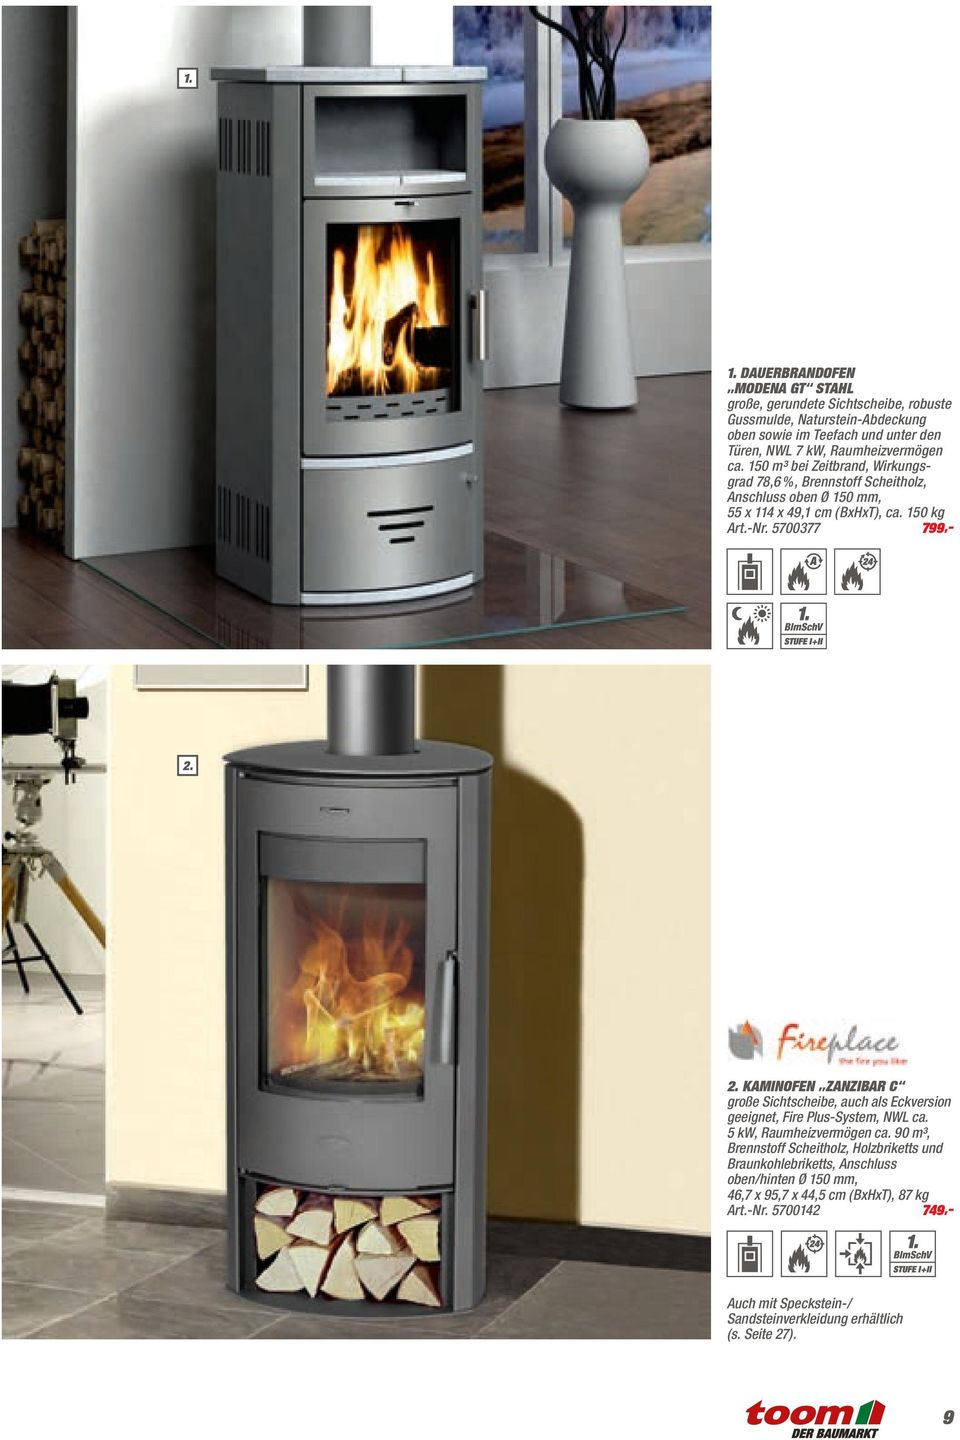 Kaminofen Hark Opera-b Grande Keramik Creme 7 Kw Kaminofen Passat 5kw Good With Kaminofen Passat 5kw Latest